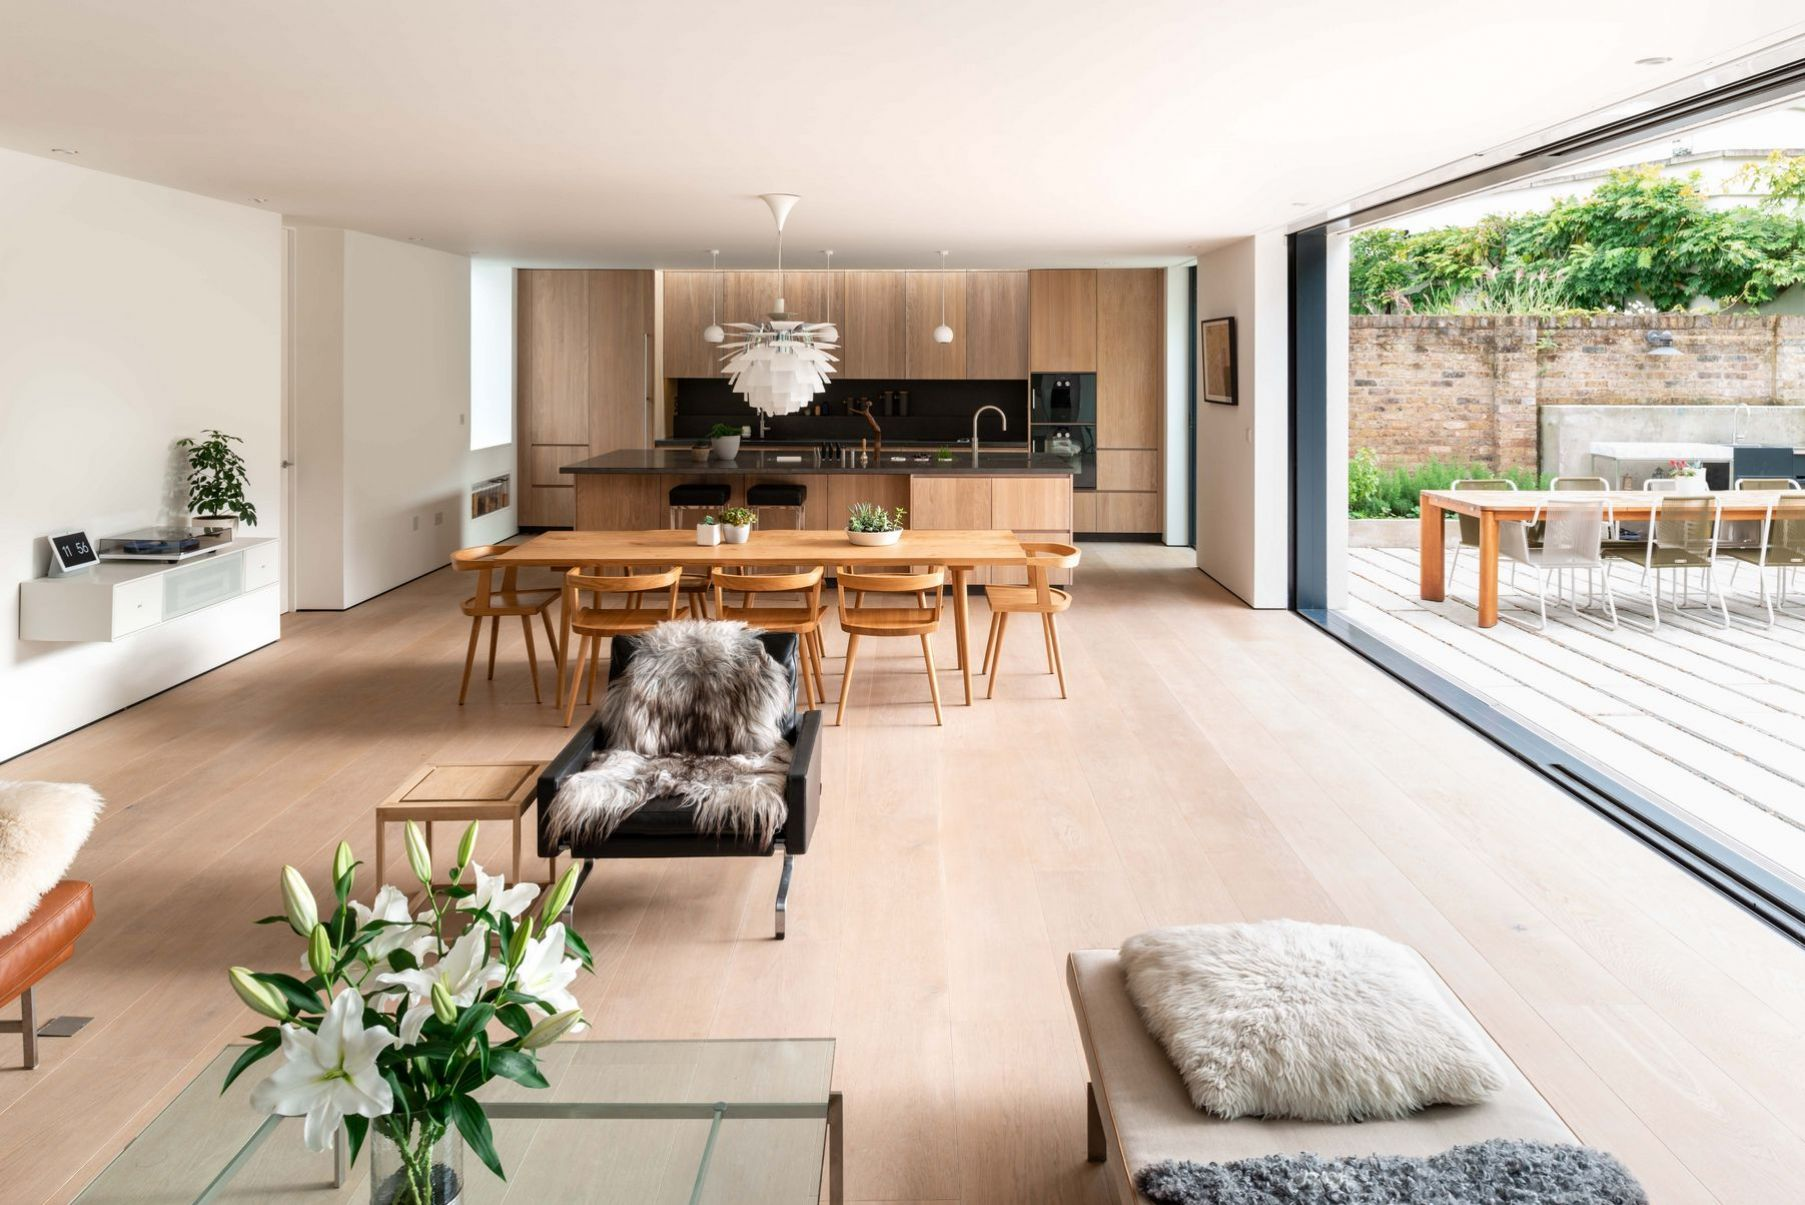 New build house with basement in Dulwich, London